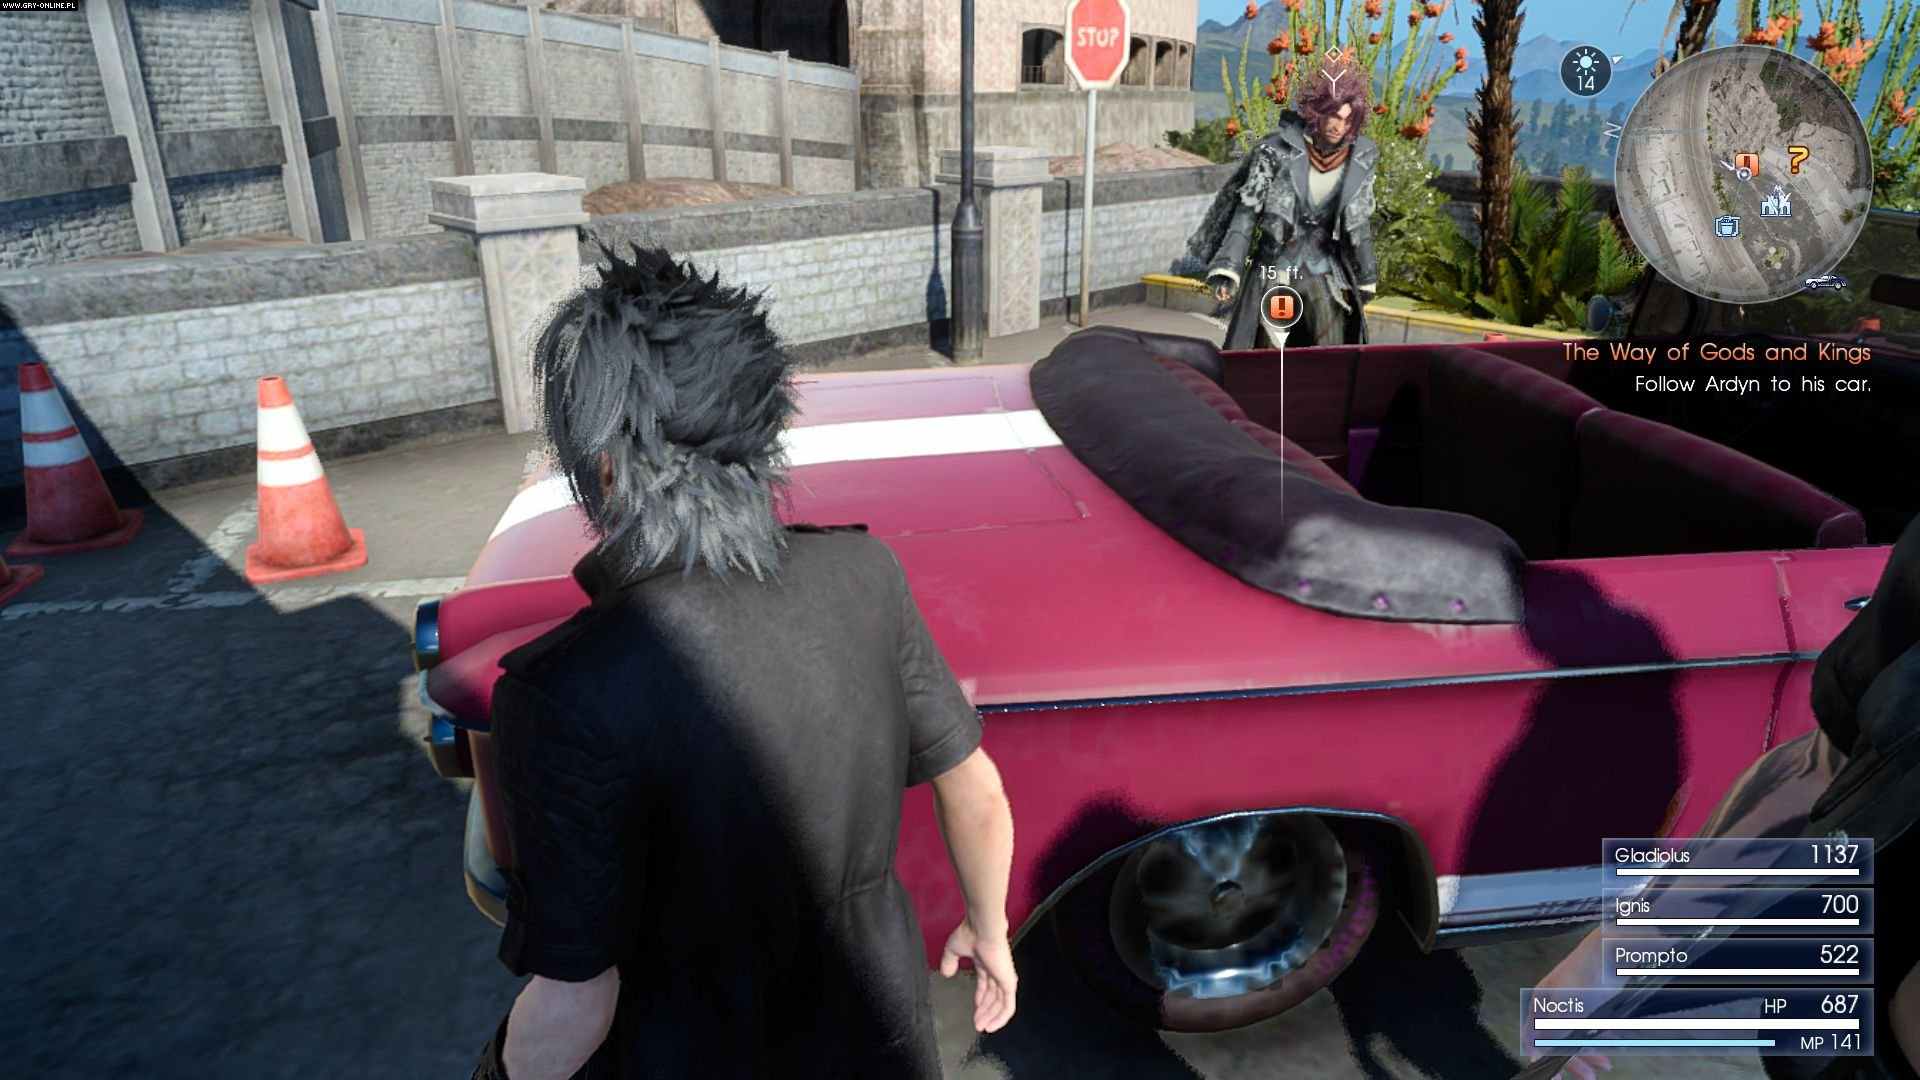 Final Fantasy XV PS4, XONE Gry Screen 67/393, Square-Enix / Eidos